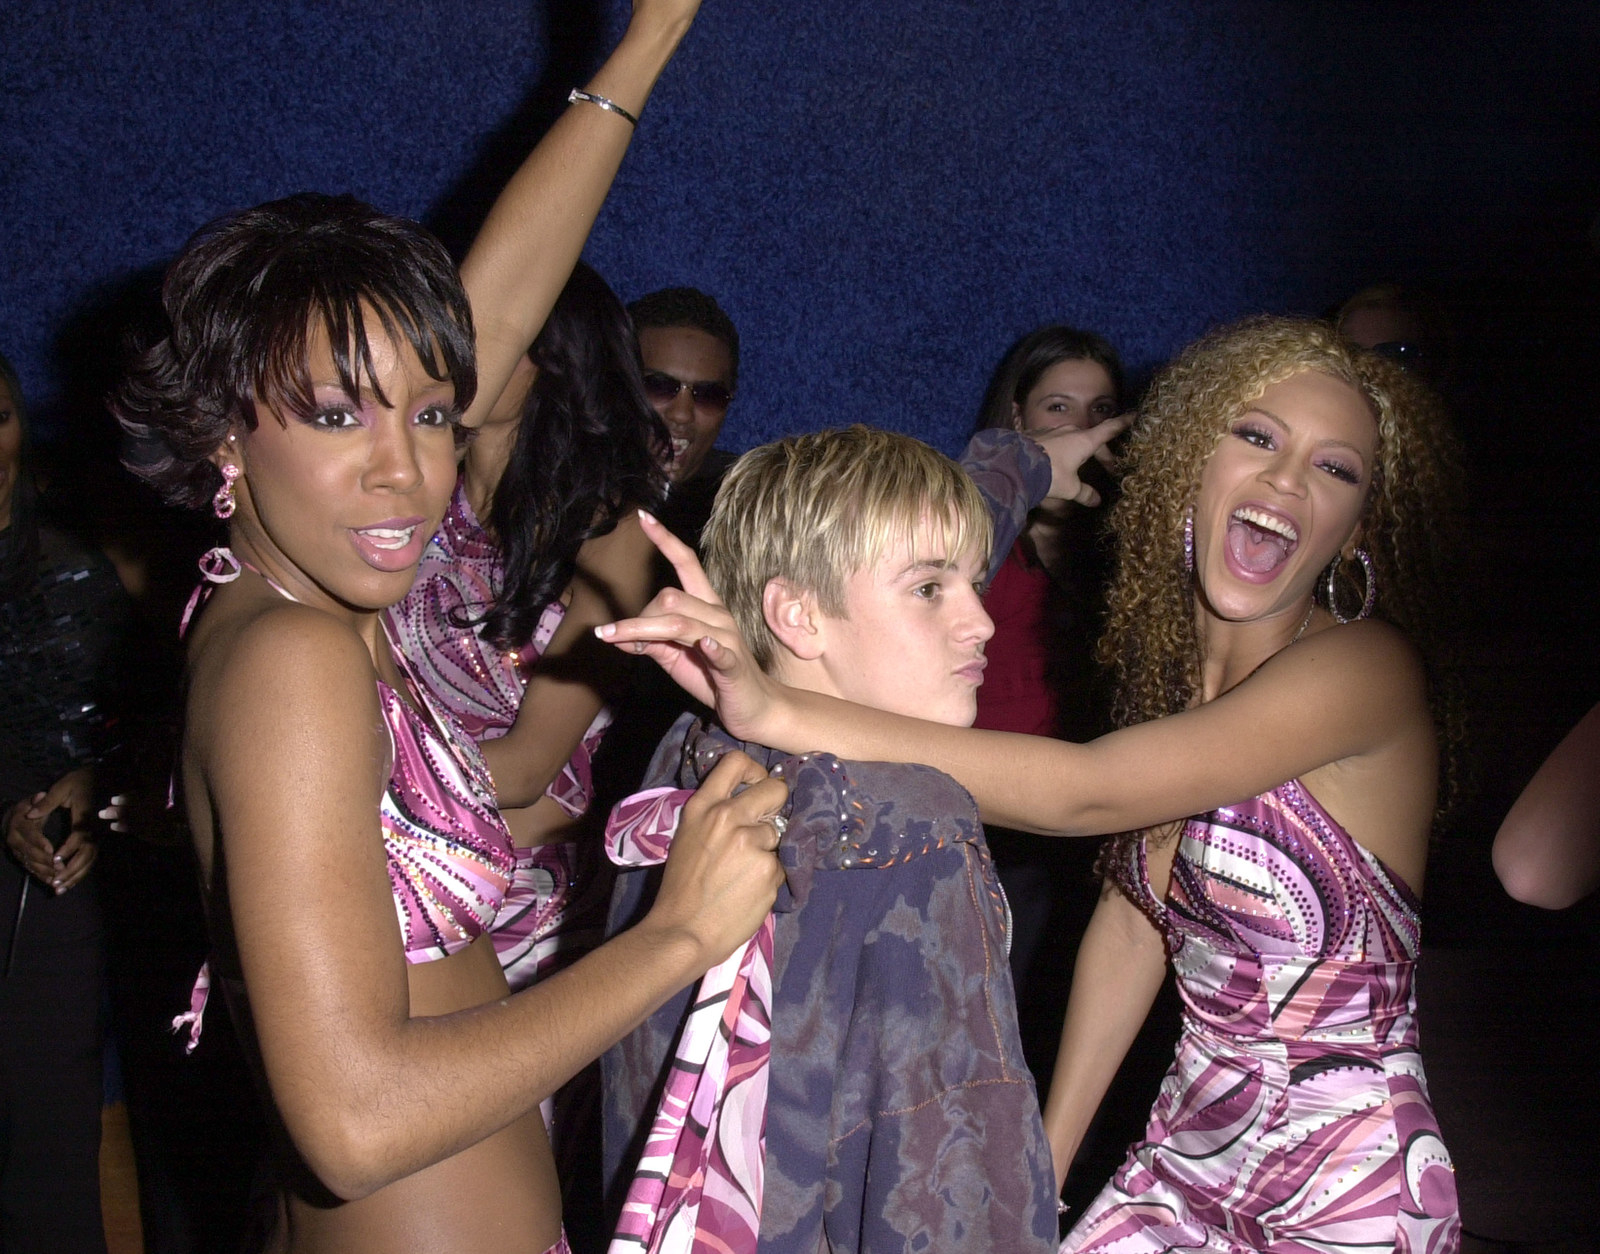 And lastly, again, having the time of her life creating an Aaron Carter sandwich with Kelly Rowland.